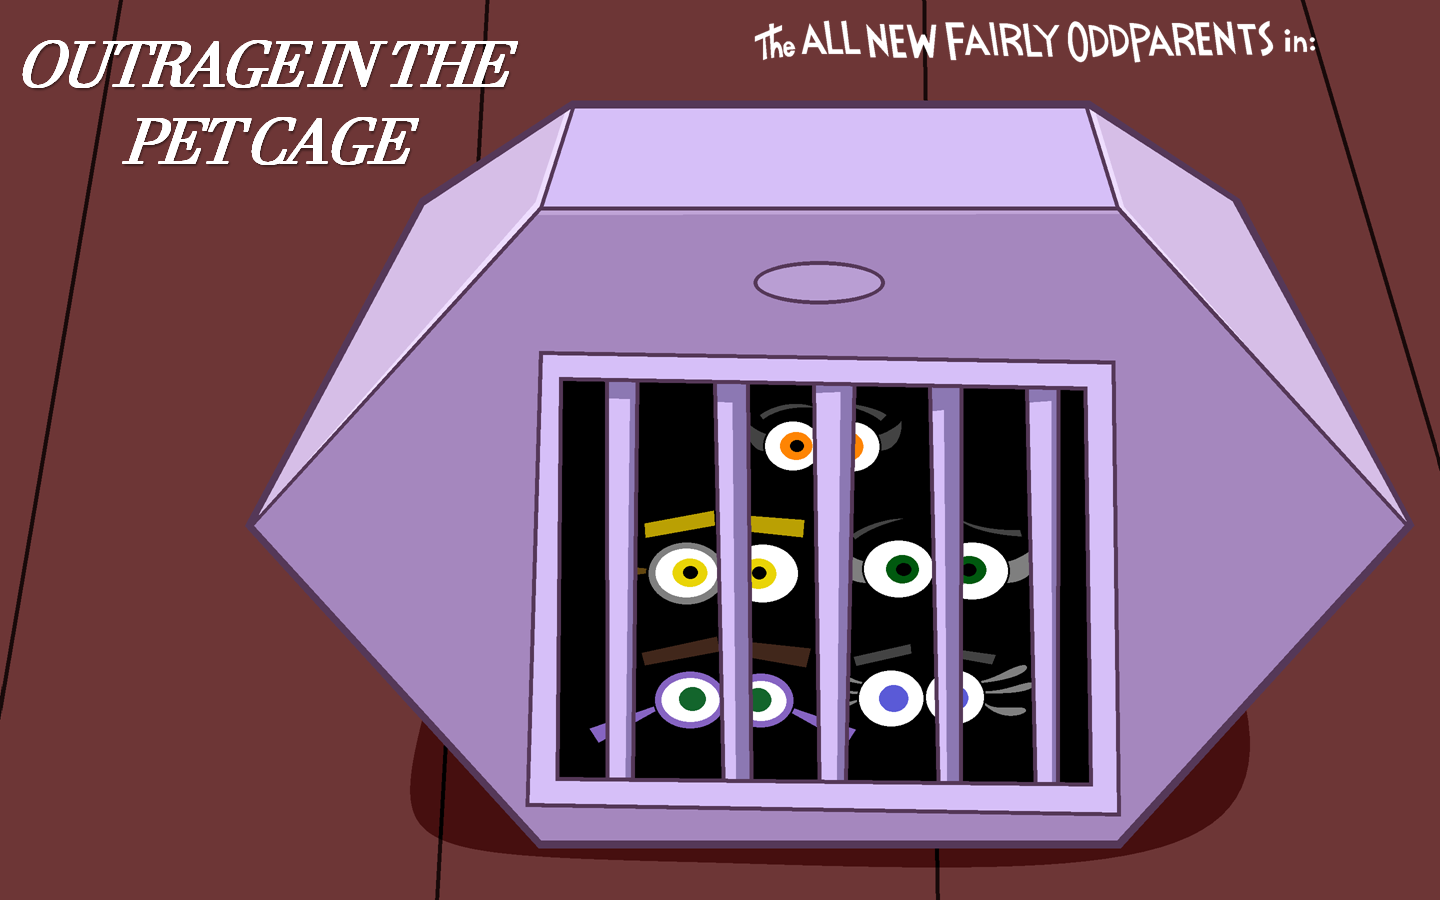 Outrage in the Pet Cage